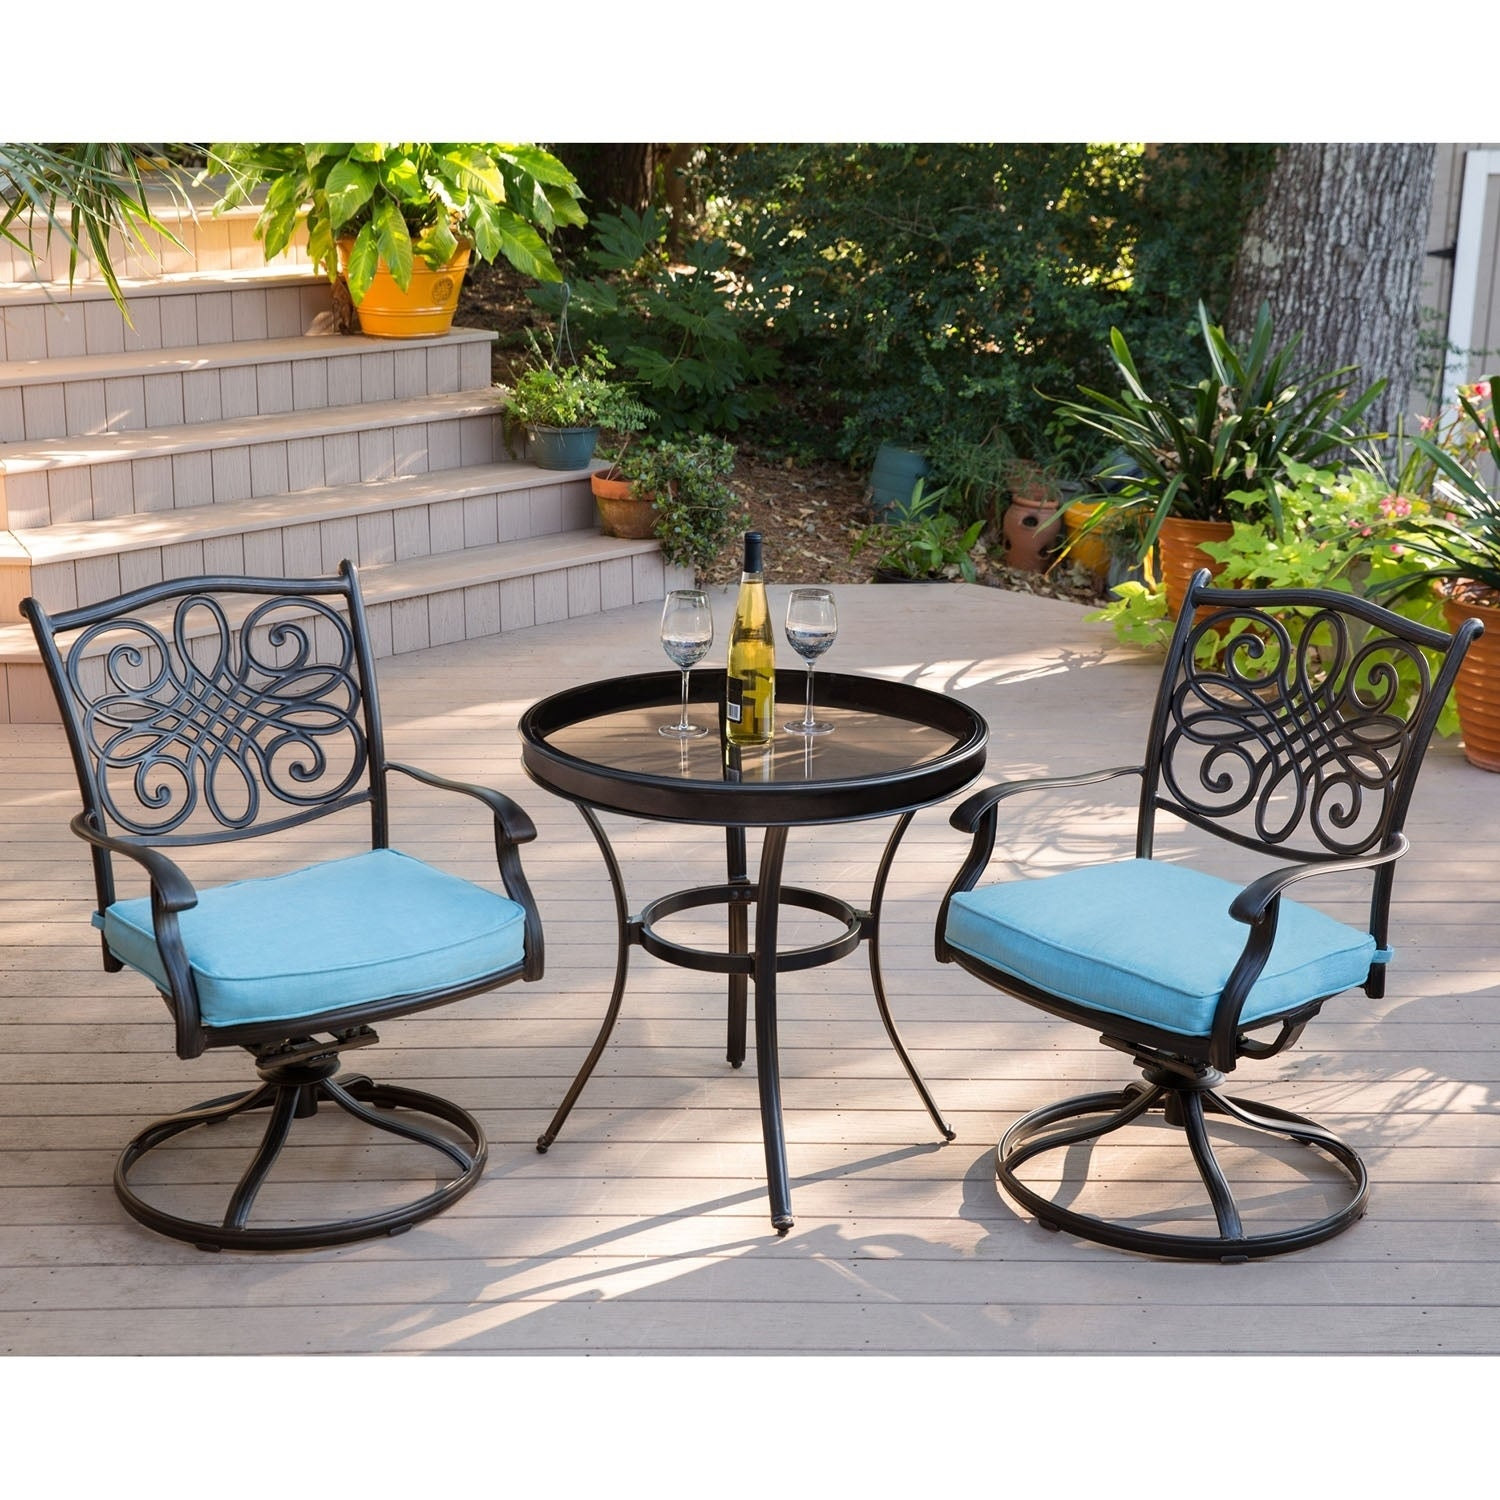 Admirable Hanover Traditions 3 Piece Swivel Bistro Set In Blue With 30 In Glass Top Table Caraccident5 Cool Chair Designs And Ideas Caraccident5Info